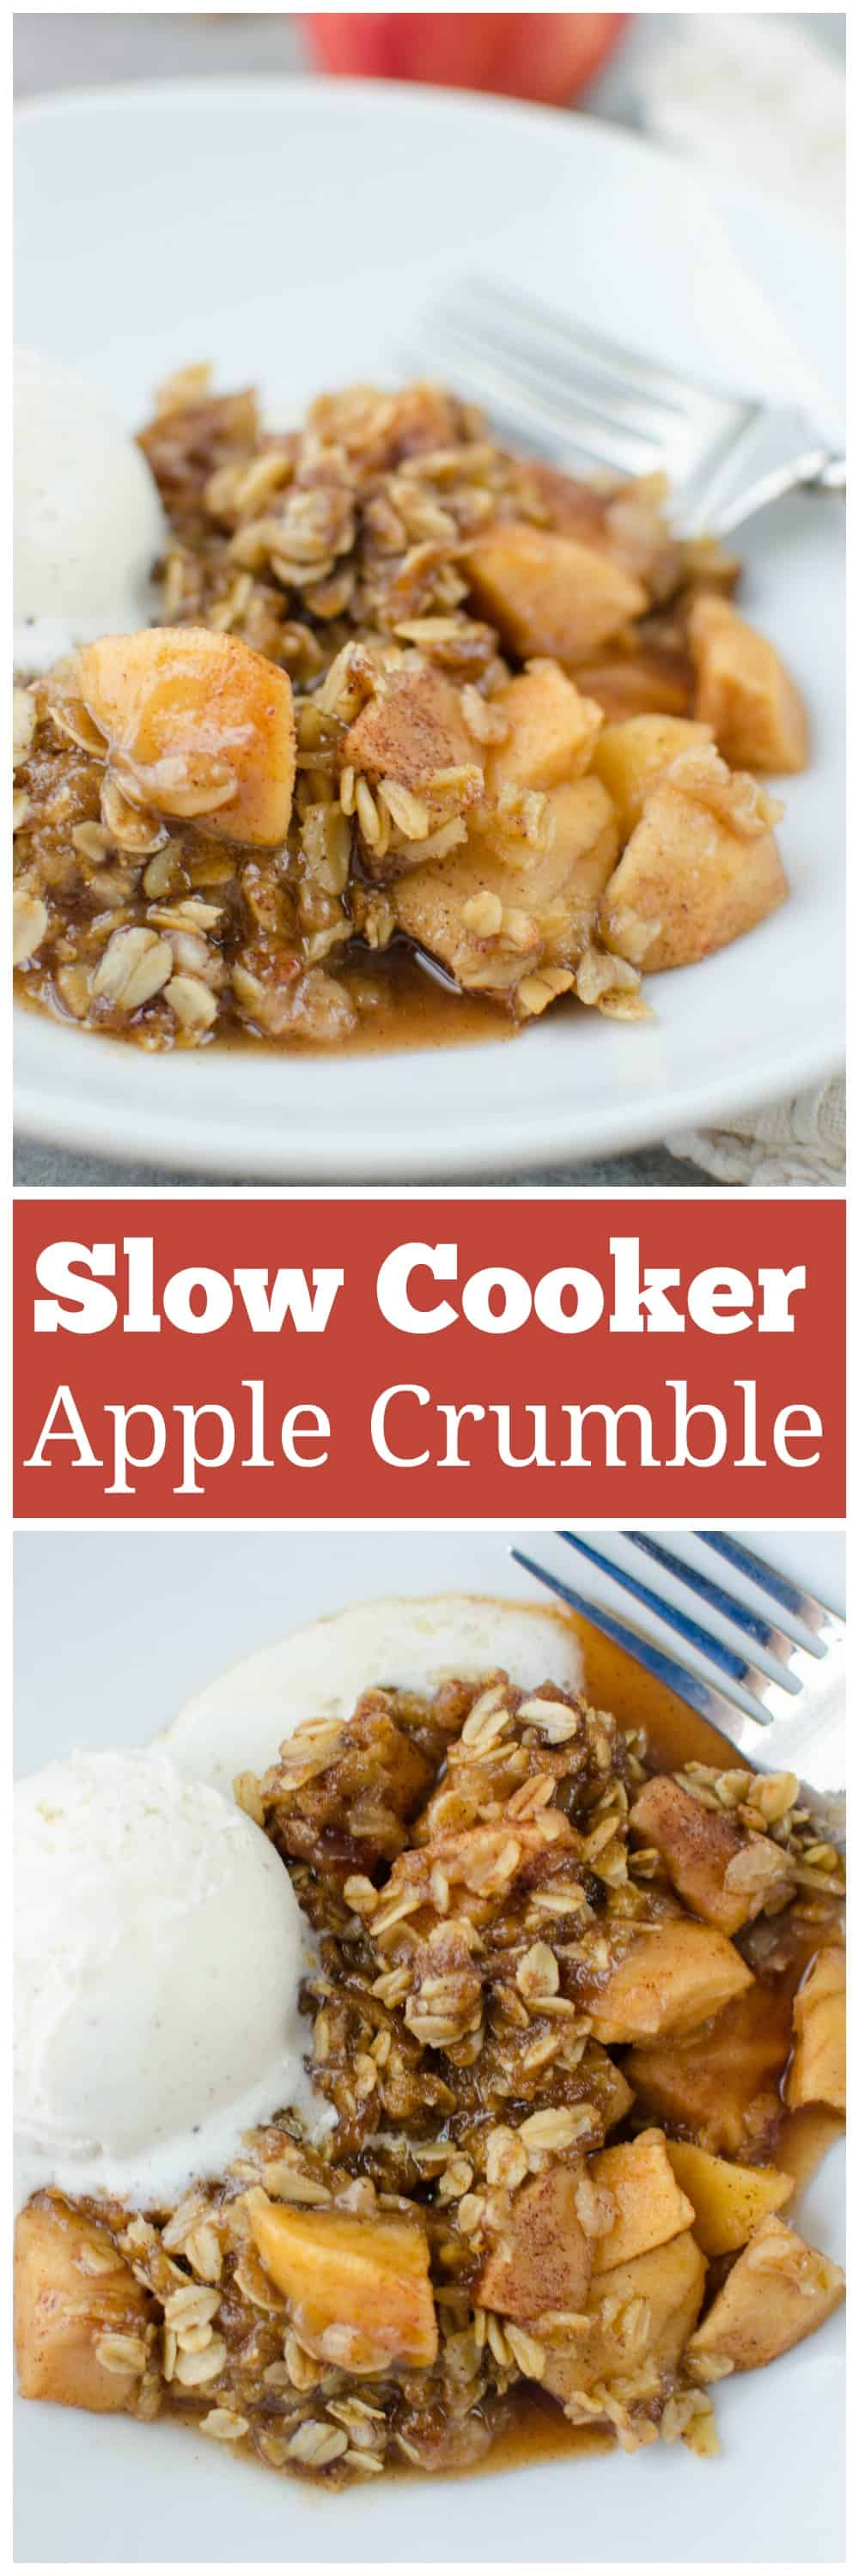 Crockpot Caramel Apple Crumble - delicious fall dessert recipe! Cinnamon apples topped with a crumbly oat mixture - and it's made in the slow cooker!